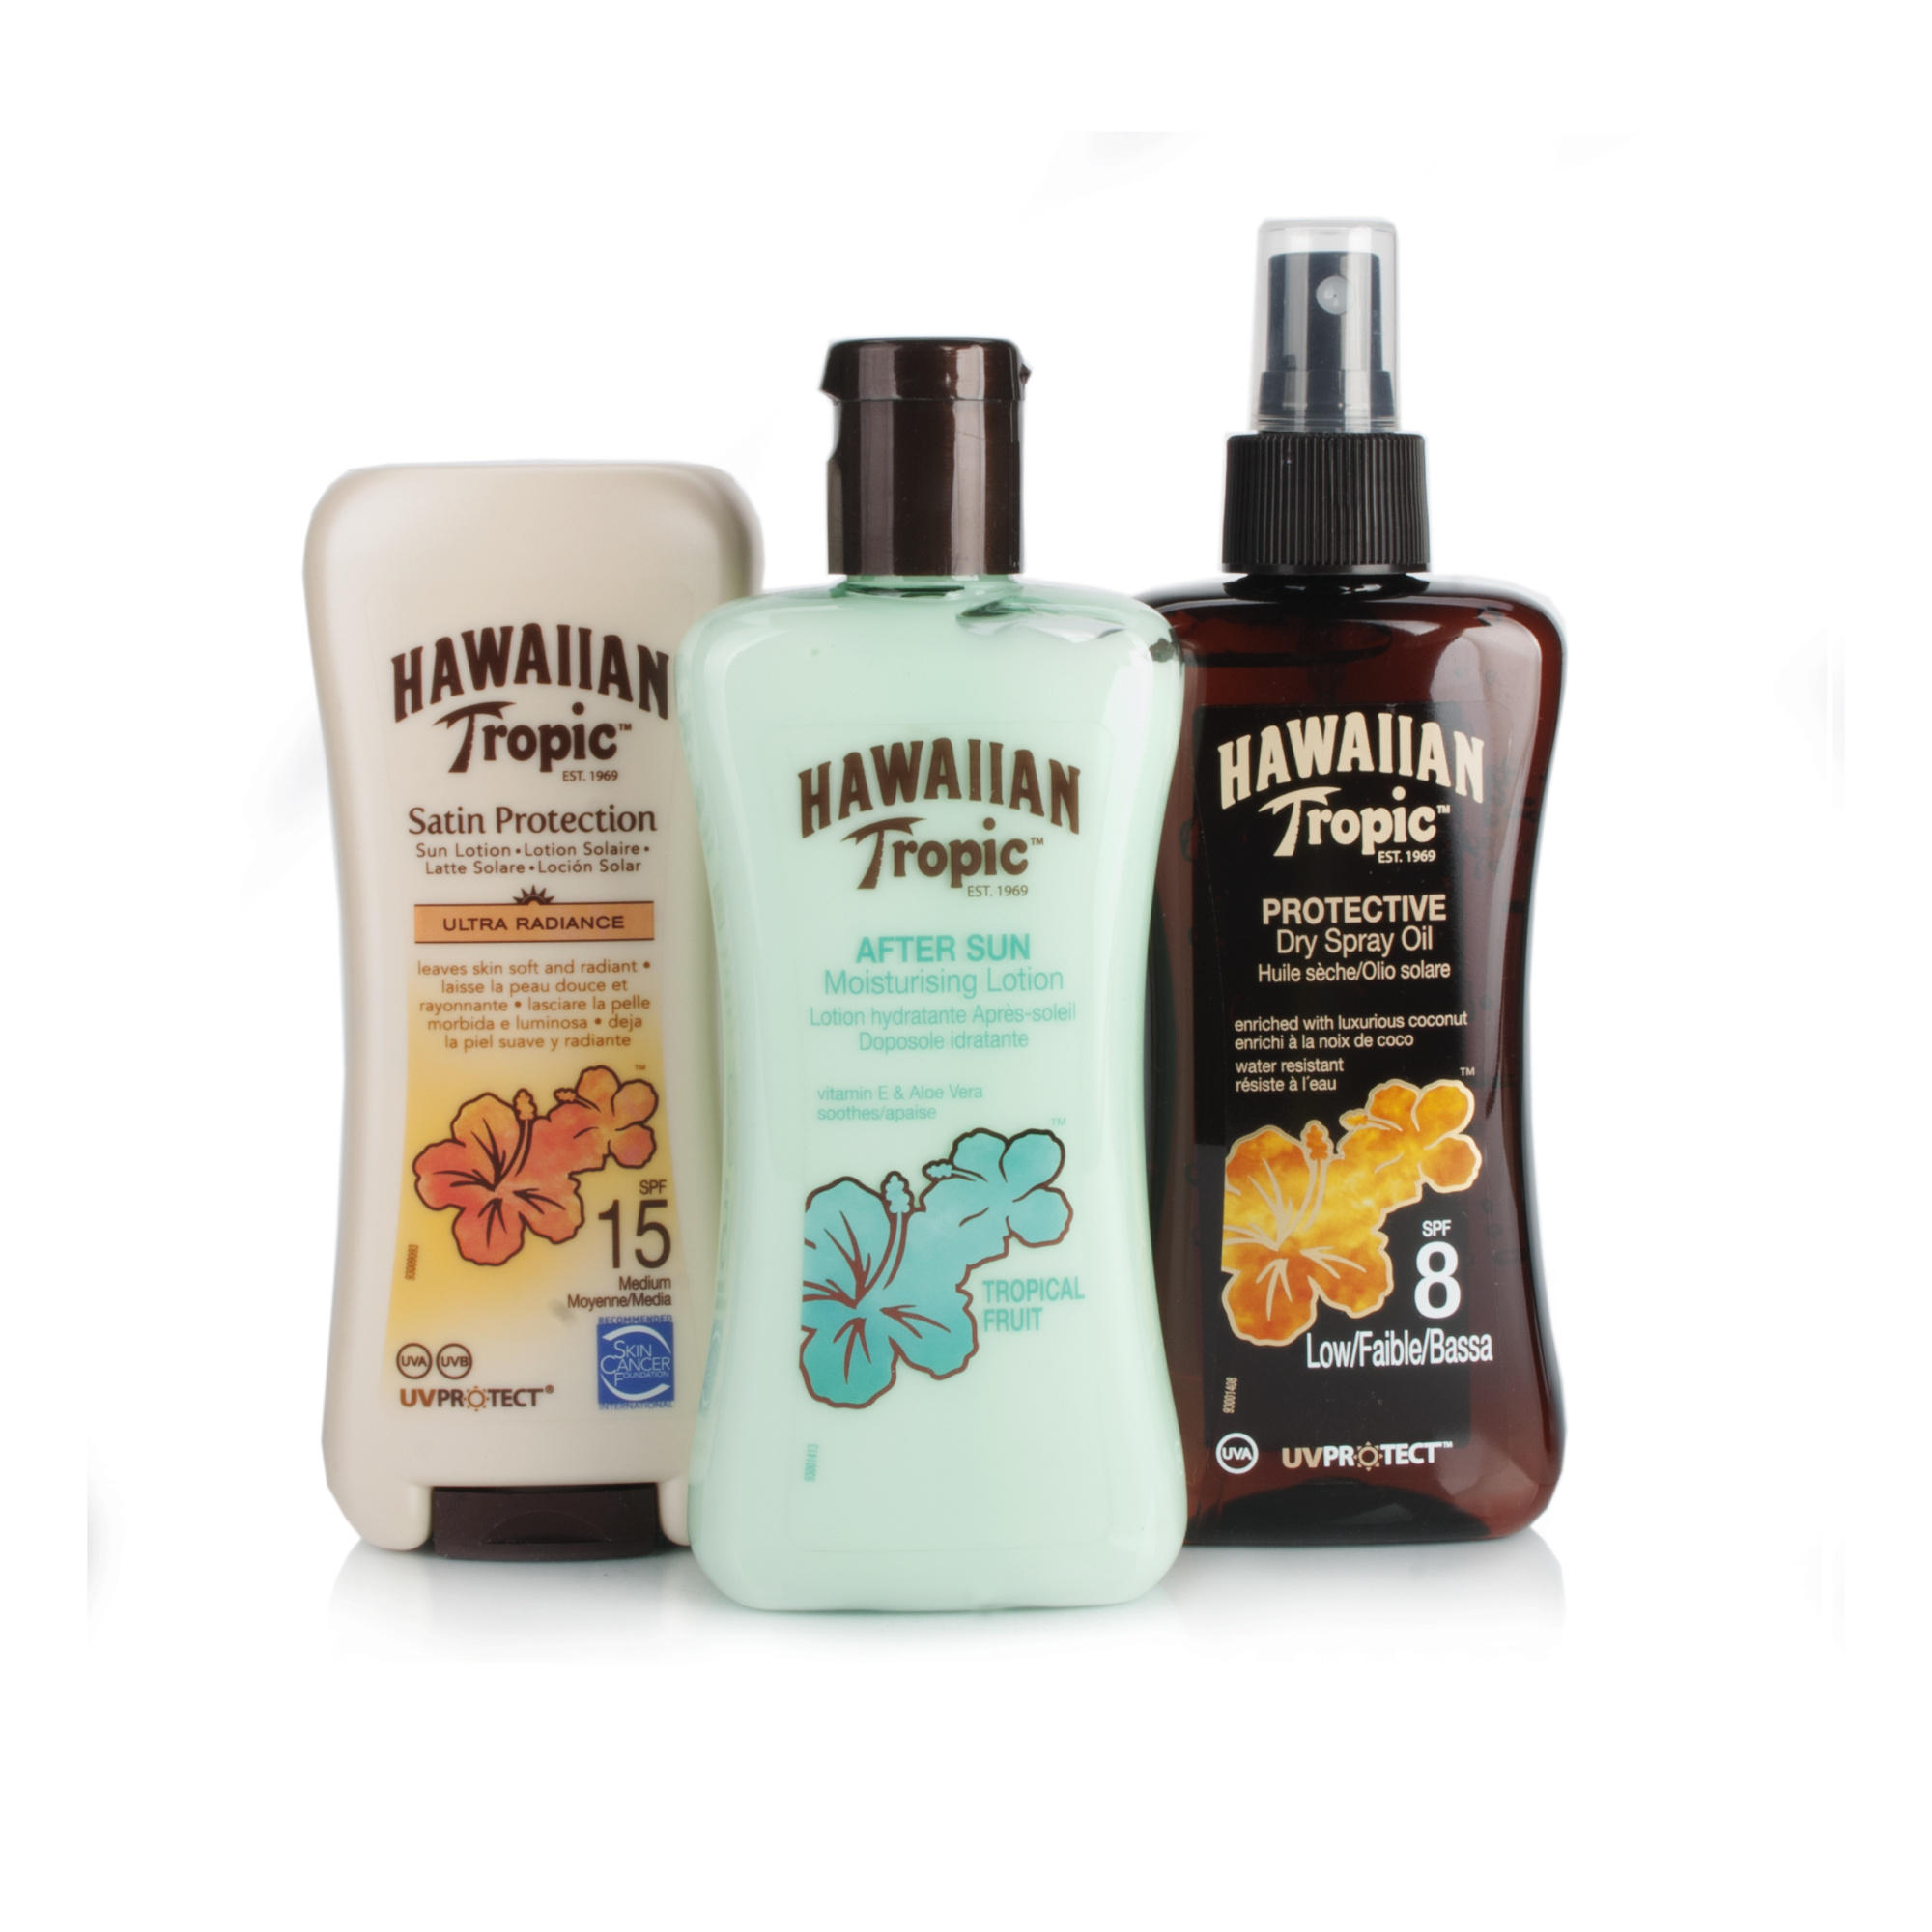 Hawaiian Tropic Protective Sun Lotion SPF15Protective Dry Oil SPF8Aftersun Moisturising Lotion